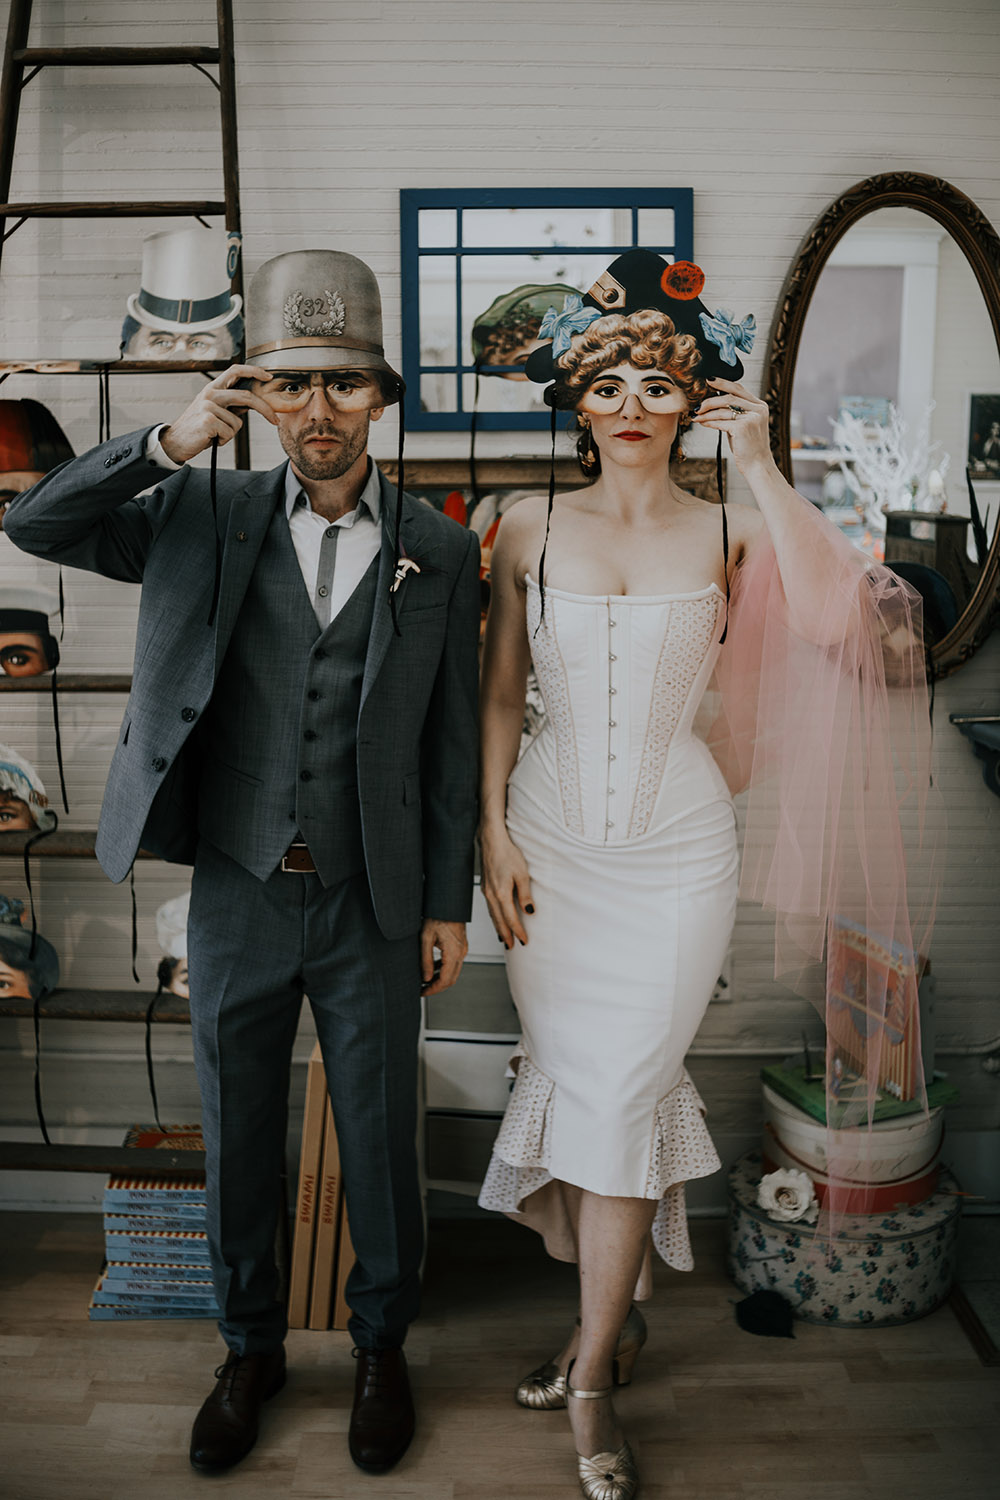 Bride and groom pose with vintage-style masks from L. Delaney's Imaginarium